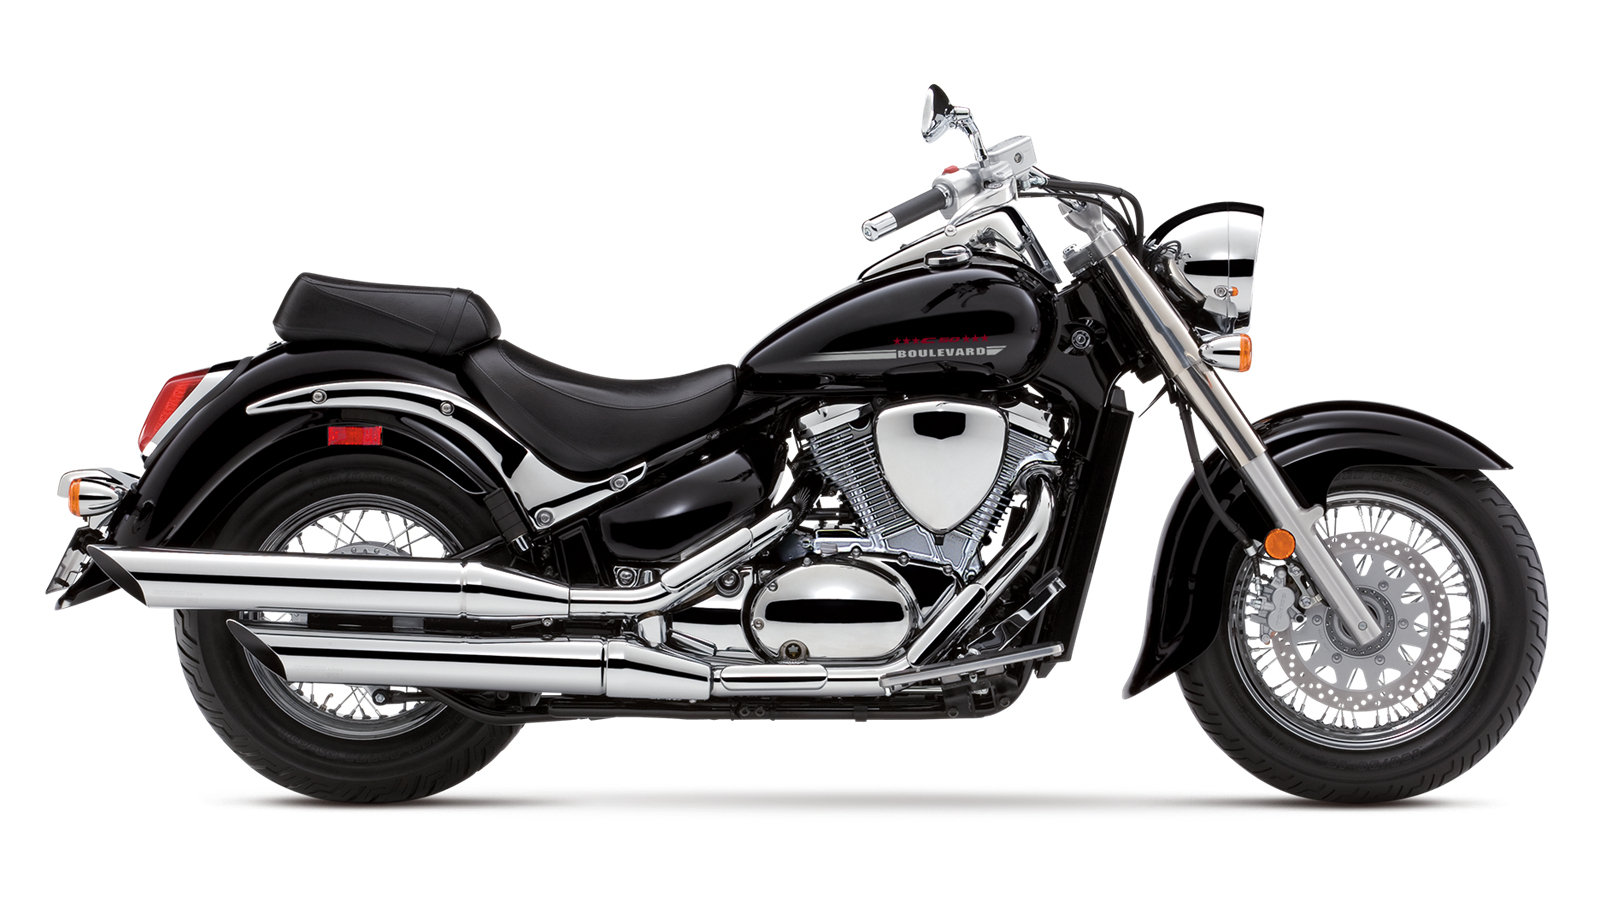 2016 boulevard c50 3_1600x0w 2015 2017 suzuki boulevard c50 boulevard c50t review top speed Kenworth Wiring Schematics Wiring Diagrams at soozxer.org